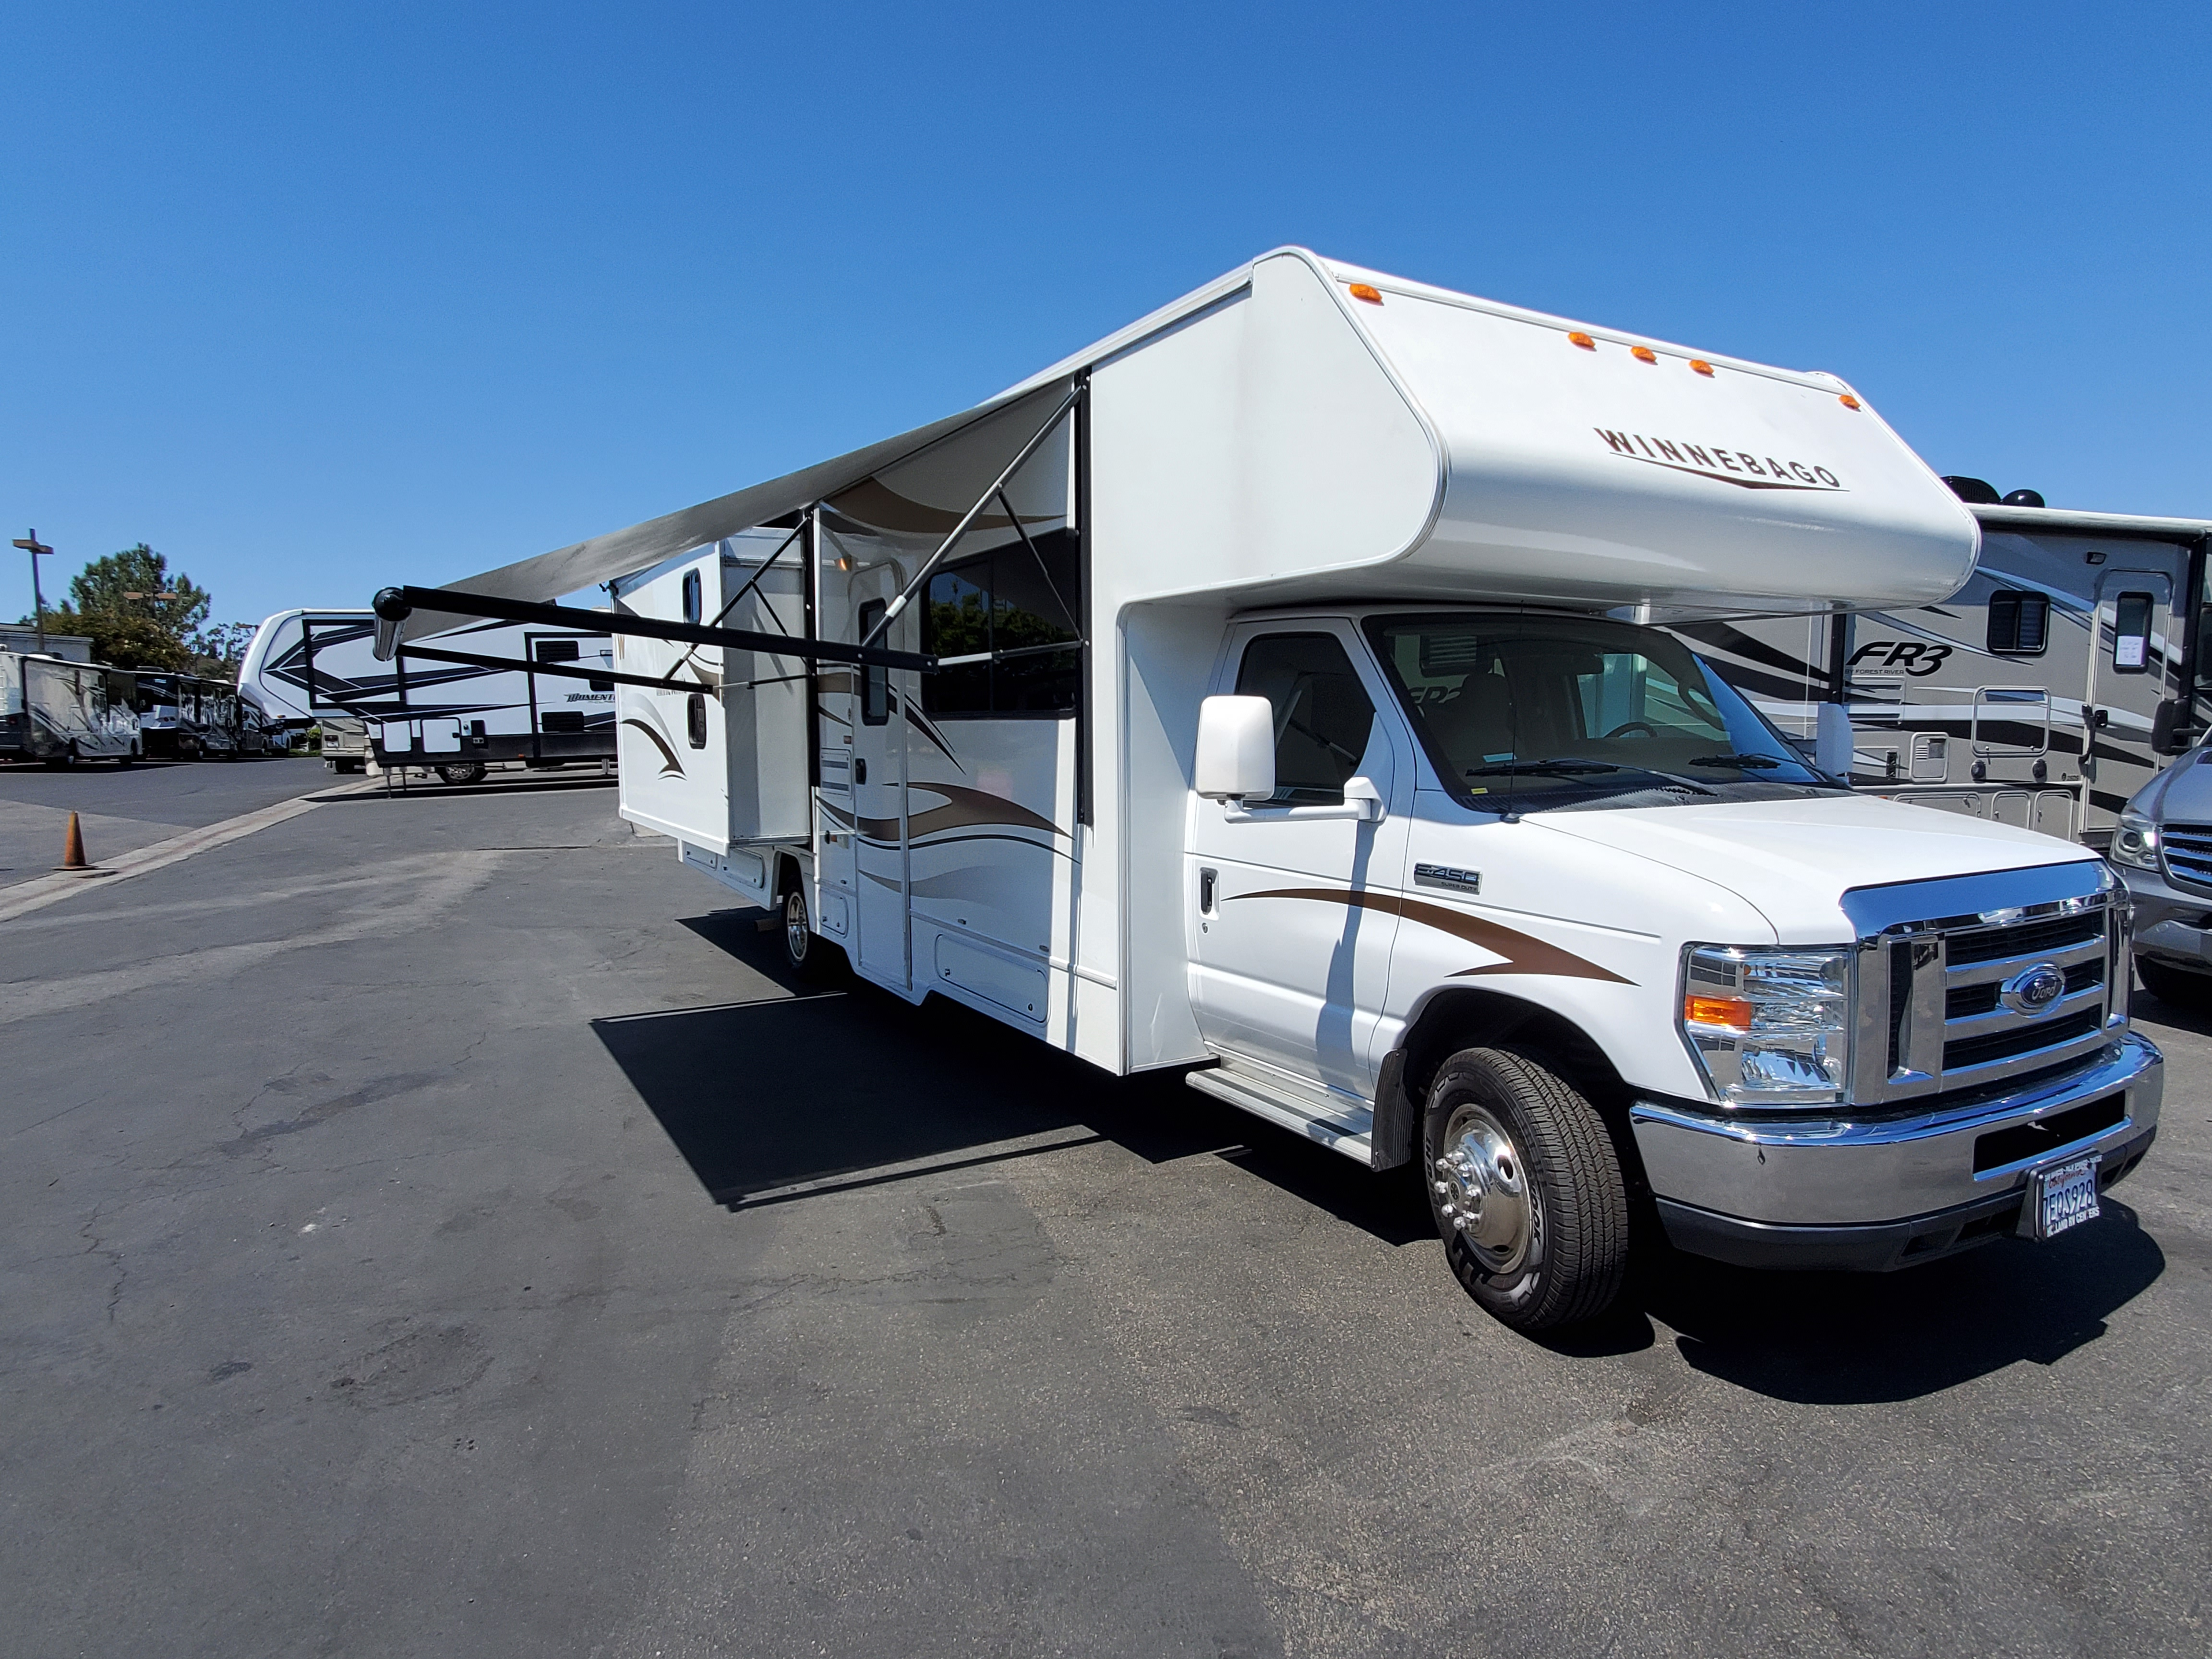 Electric awning which only takes seconds to set up and enjoy the shade. (2) electric slide outs turns your RV into a spacious home.. Winnebago Minnie Winnie 2014